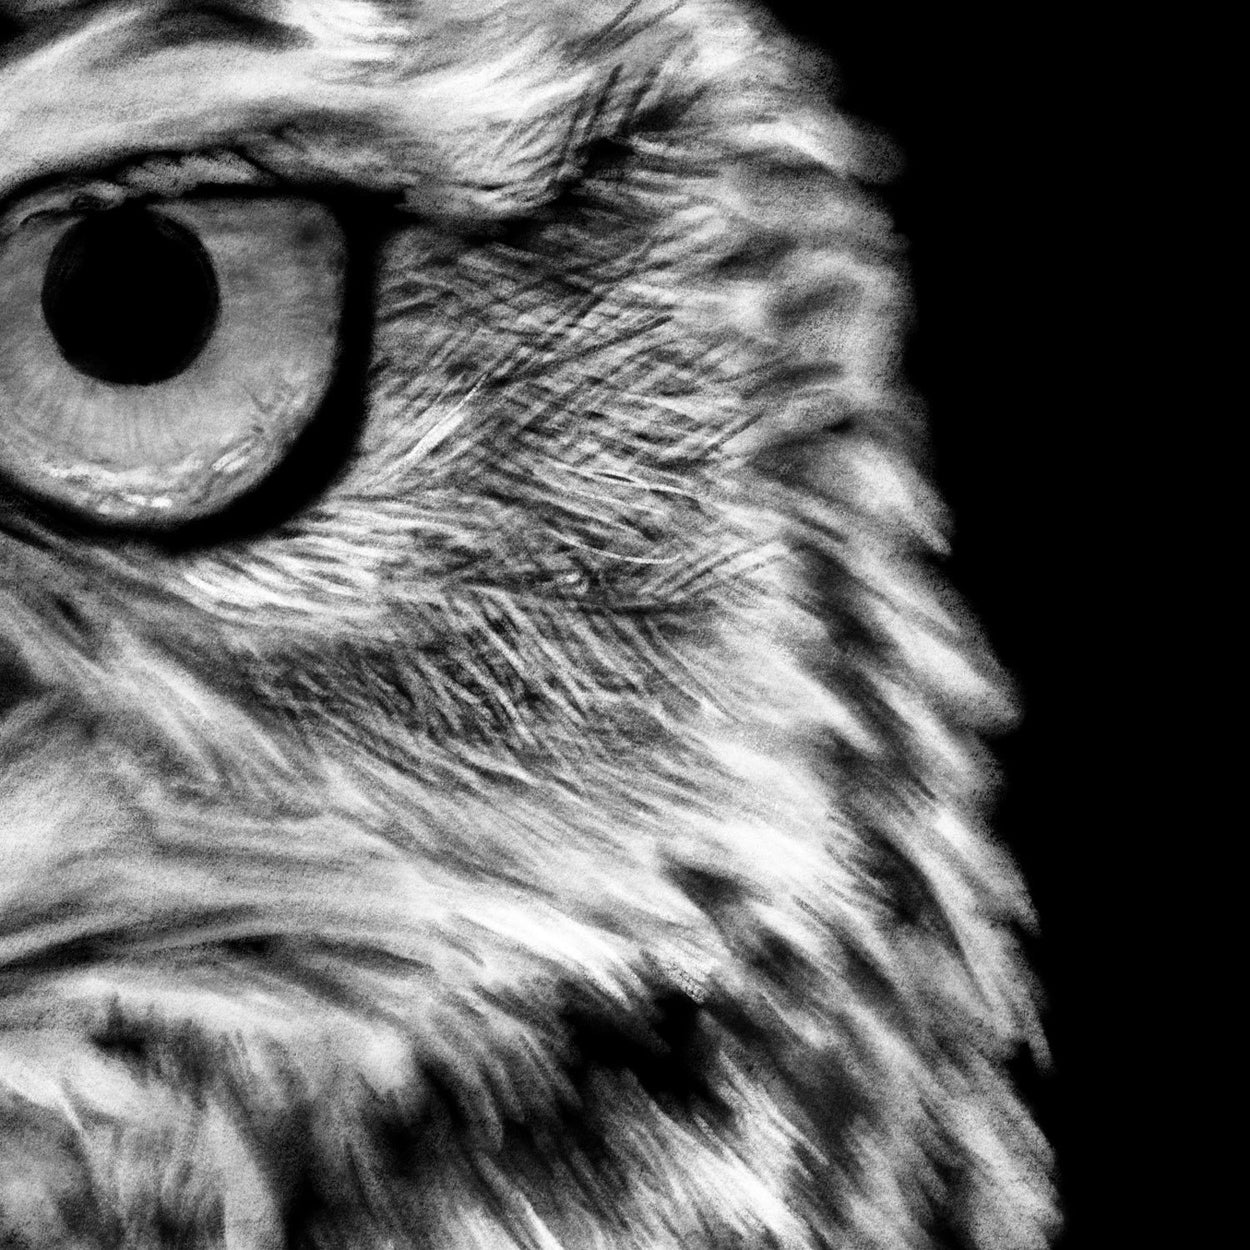 Owl Bird Procreate Digital Drawing Close-up - The Thriving Wild